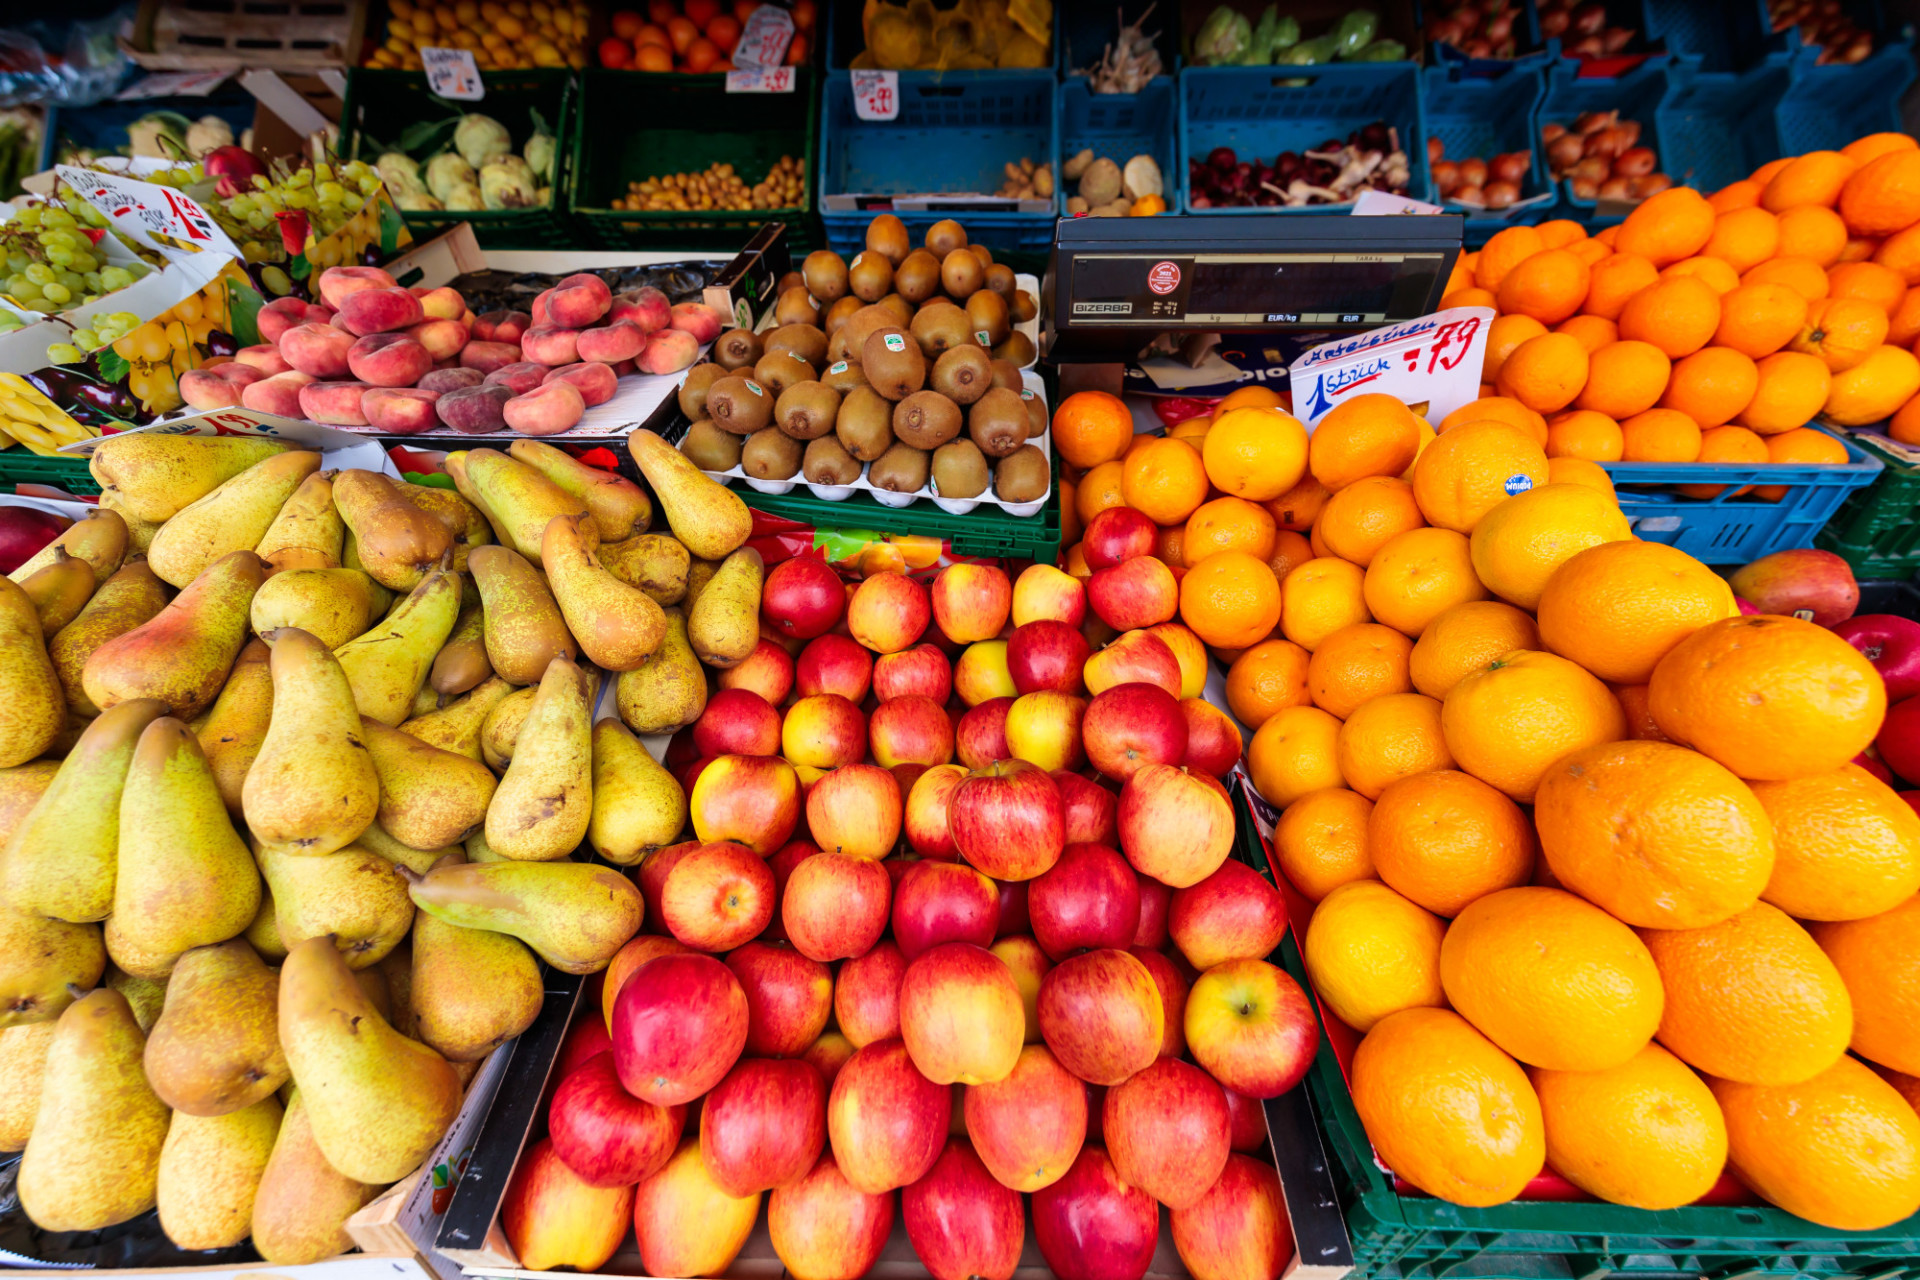 Fruits are offered for sale